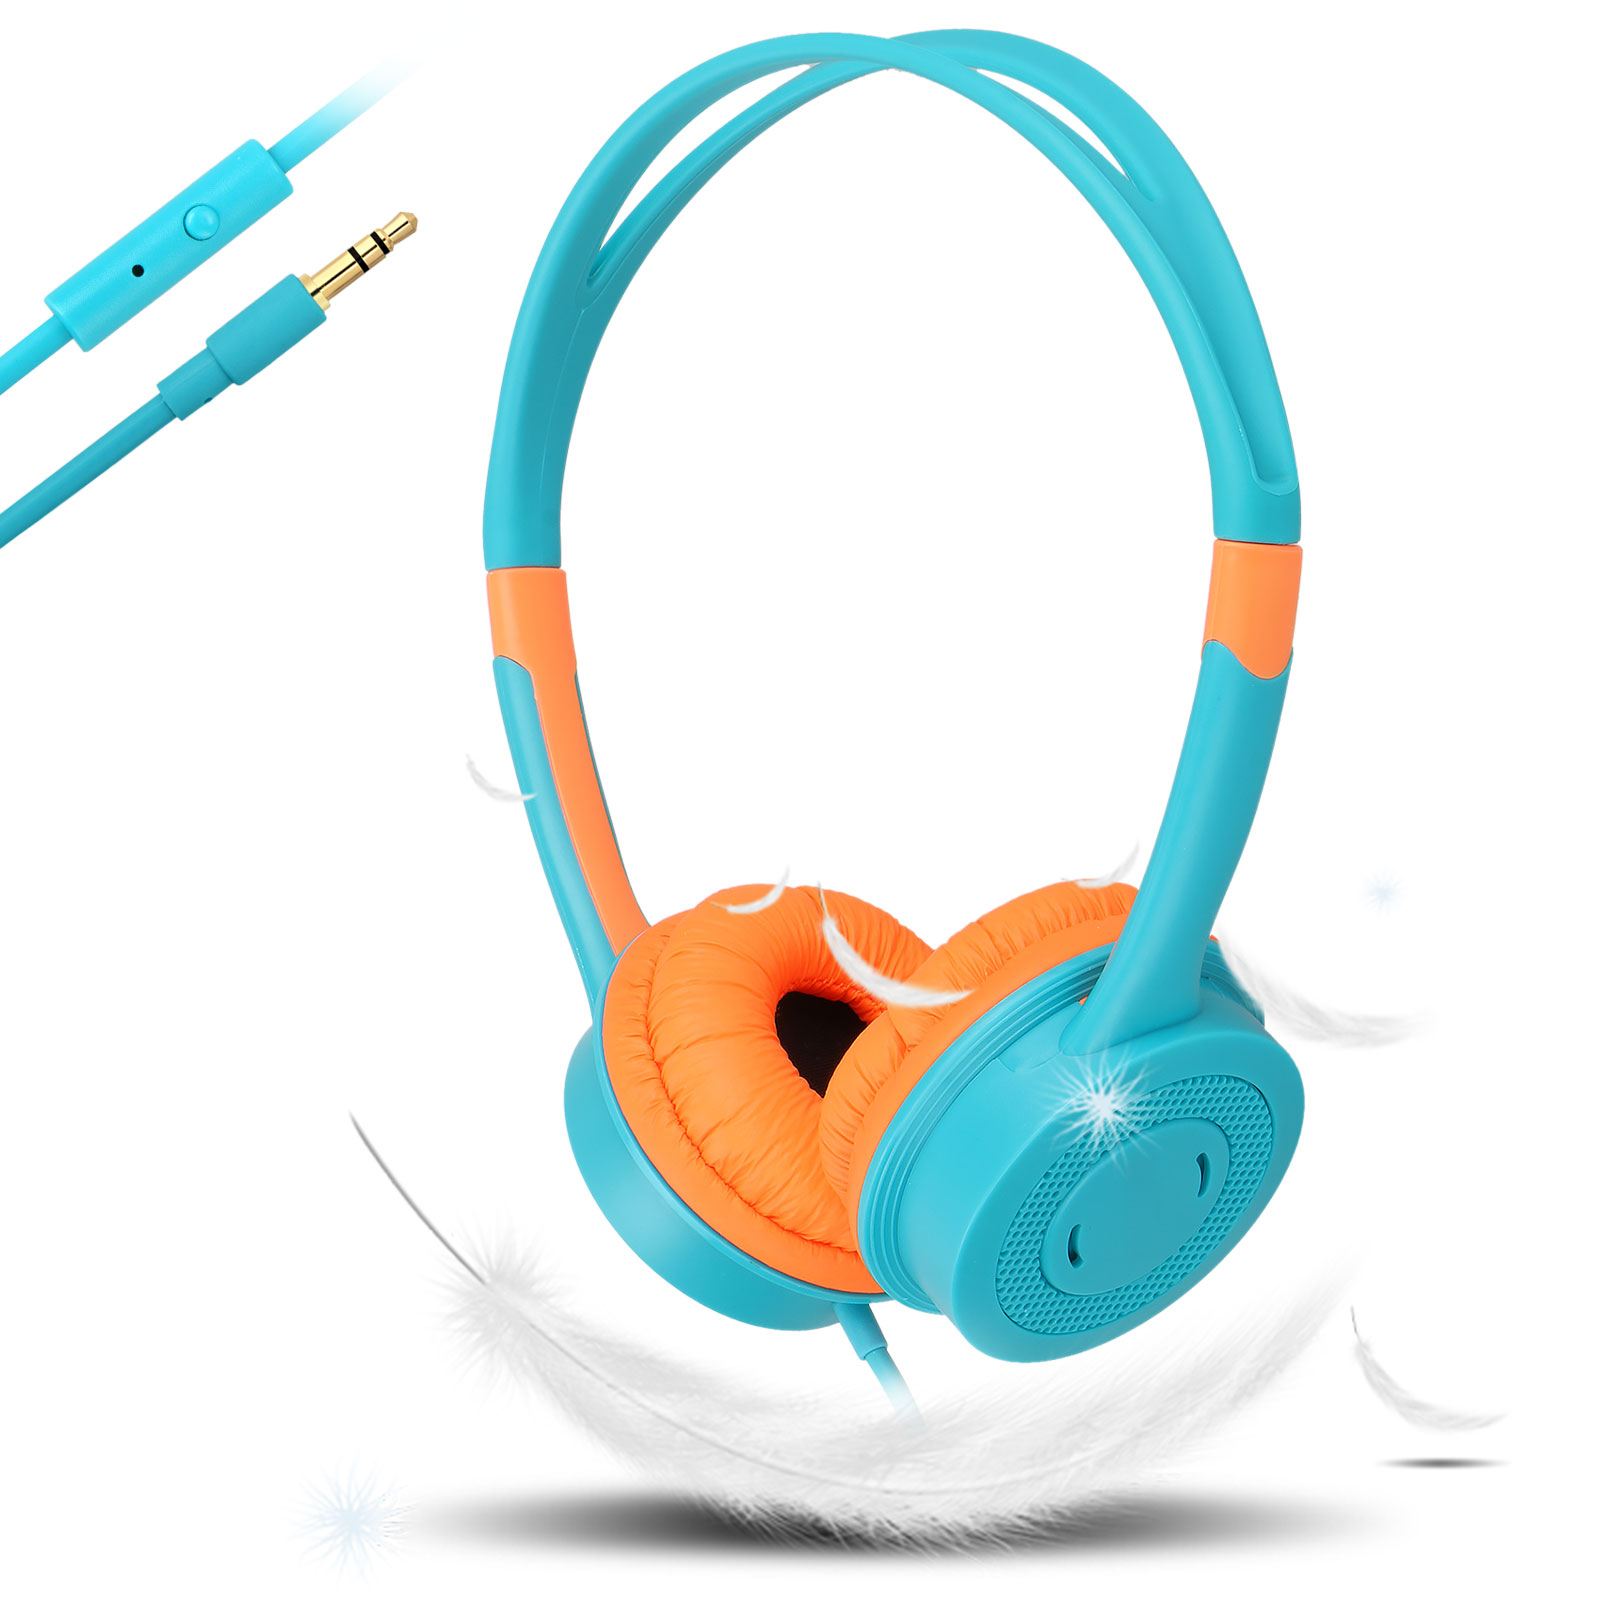 EEEKit Wired On-Ear Headphones Universal Compatibility Headser for Children, Kids, Toddler,  Children Friendly Material, Tangle-Free Cord